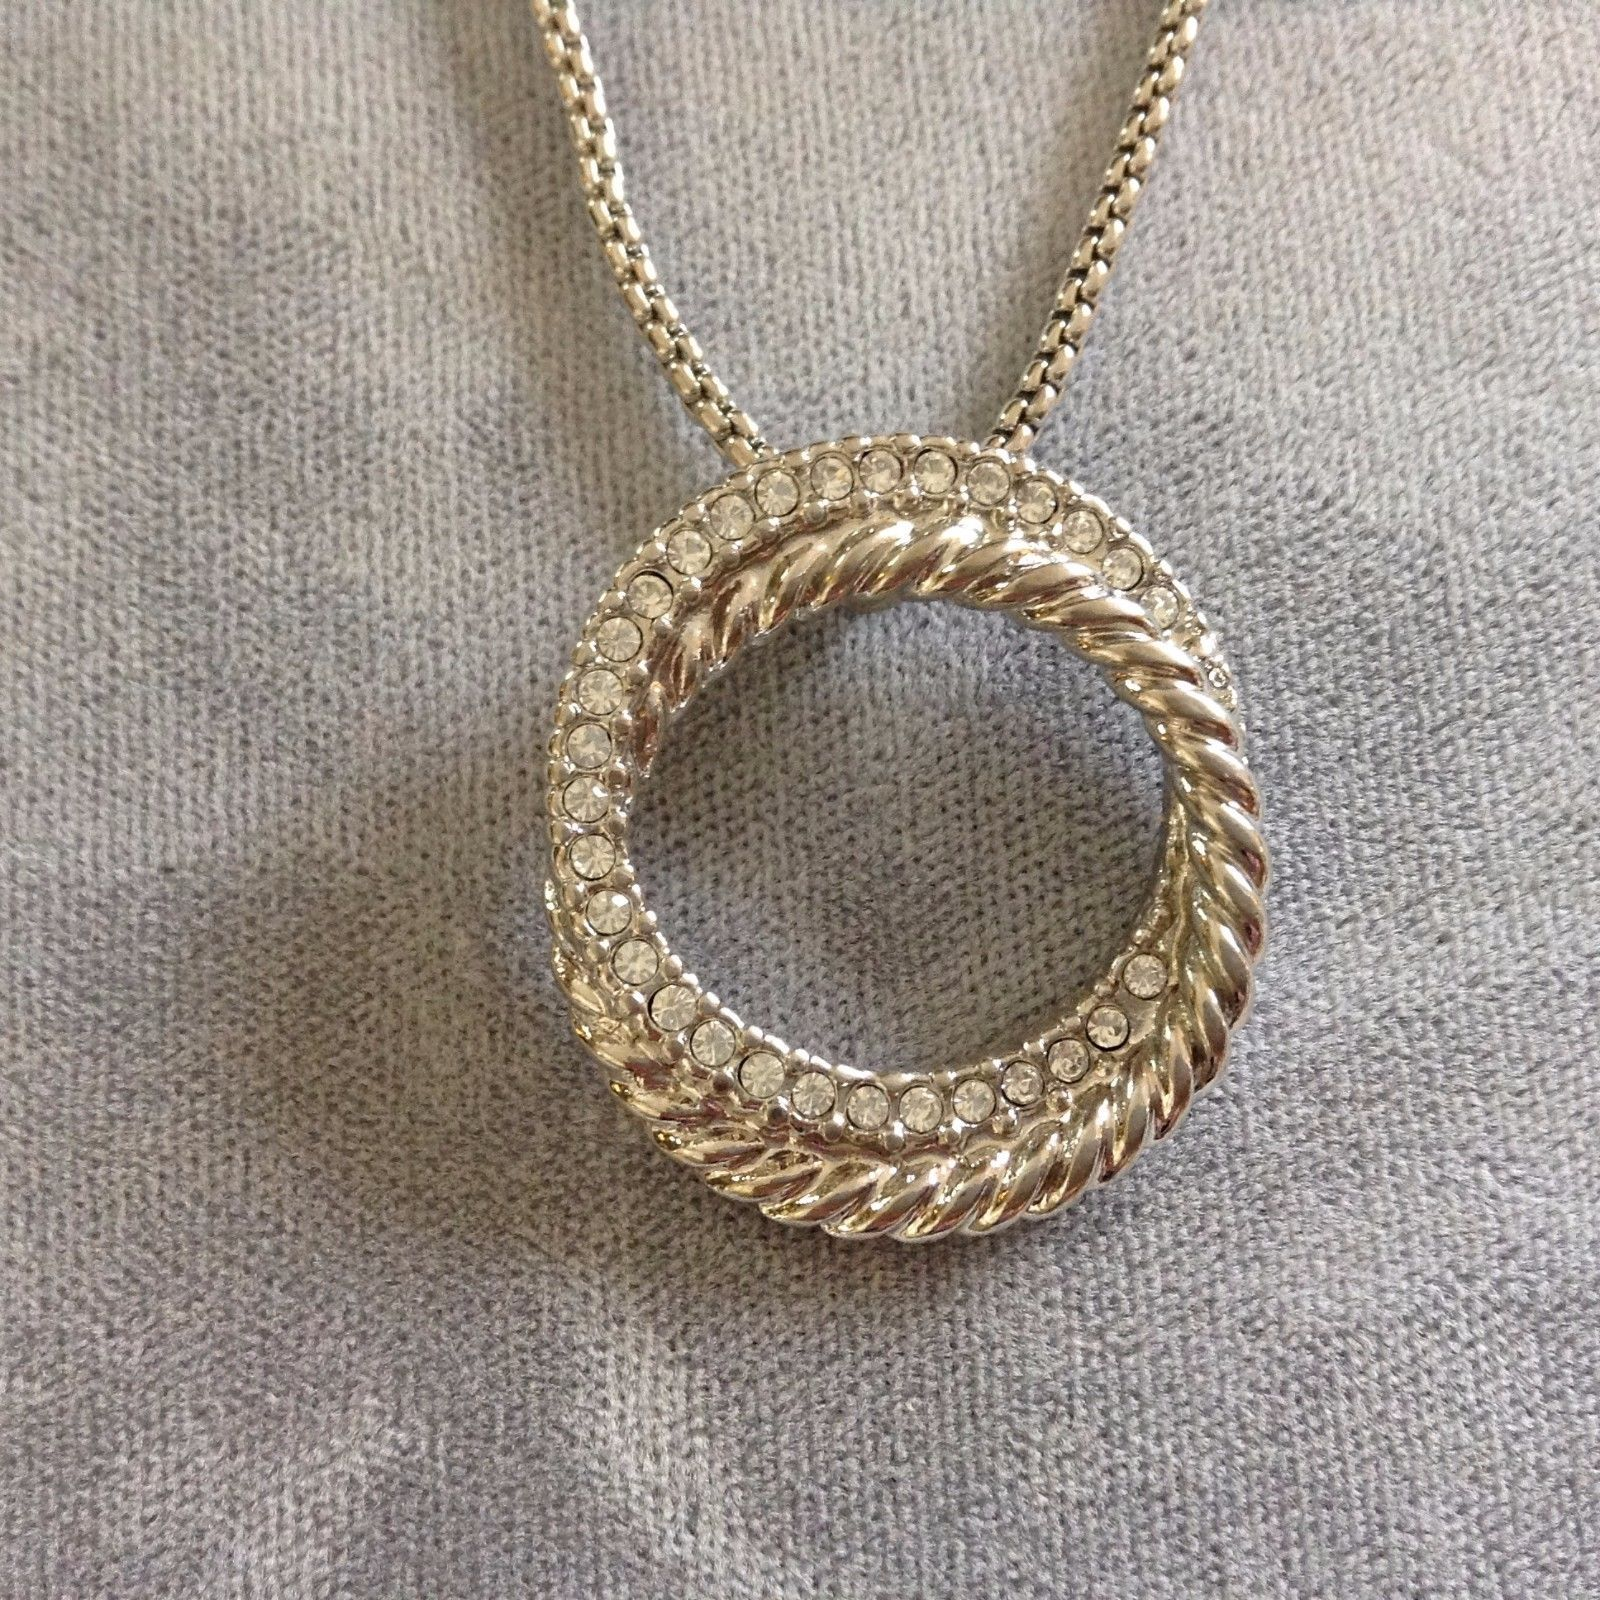 New Allure Silver Toned Necklace Braided Studded Rings Enlooped Pendant